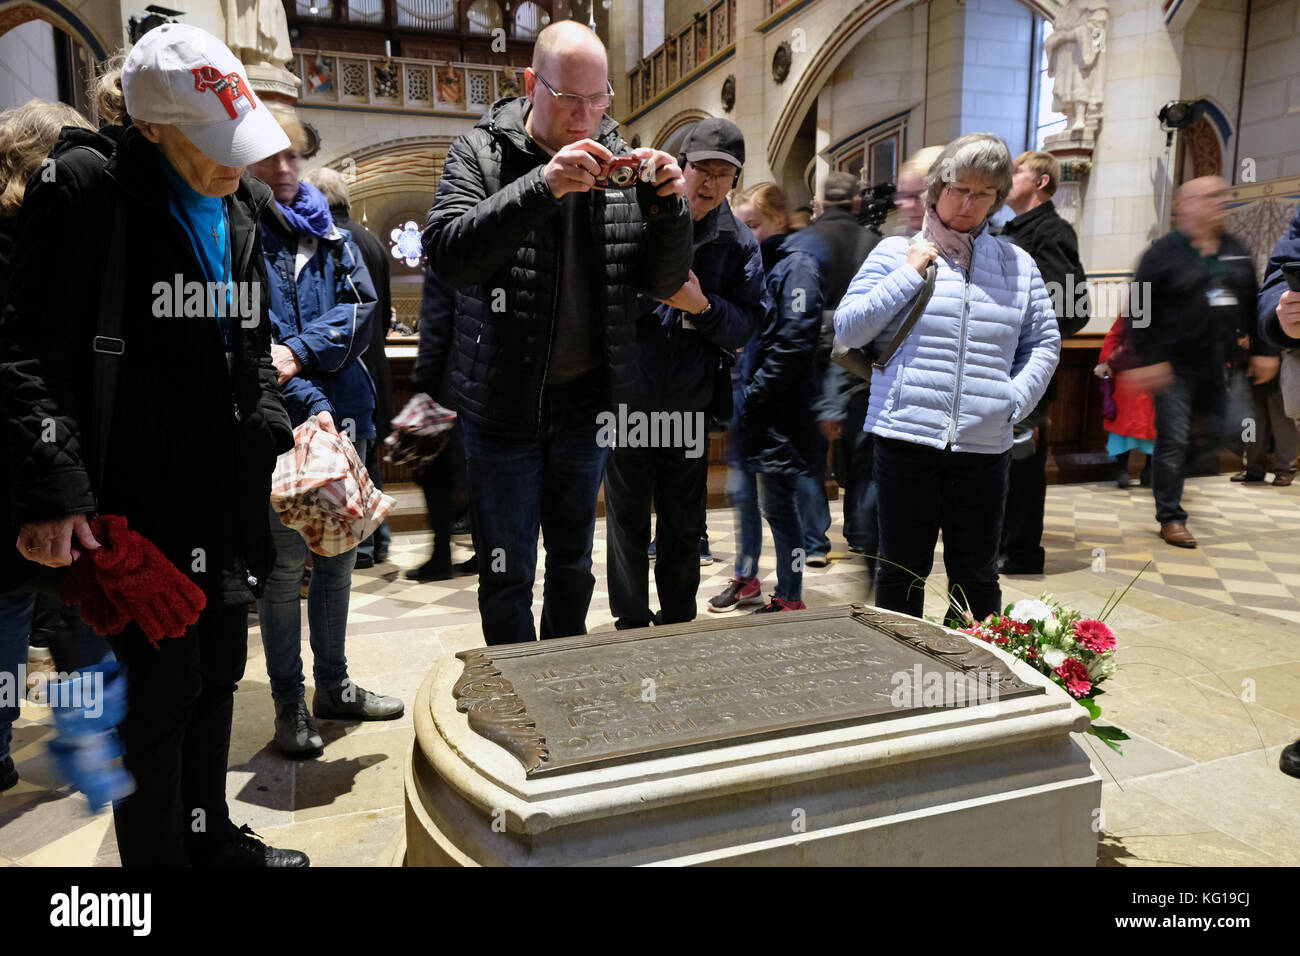 Visitors at the tomb of the church reformer Martin Luther (1483 - 1546) in the castle church in Wittenberg (Saxony - Stock Image